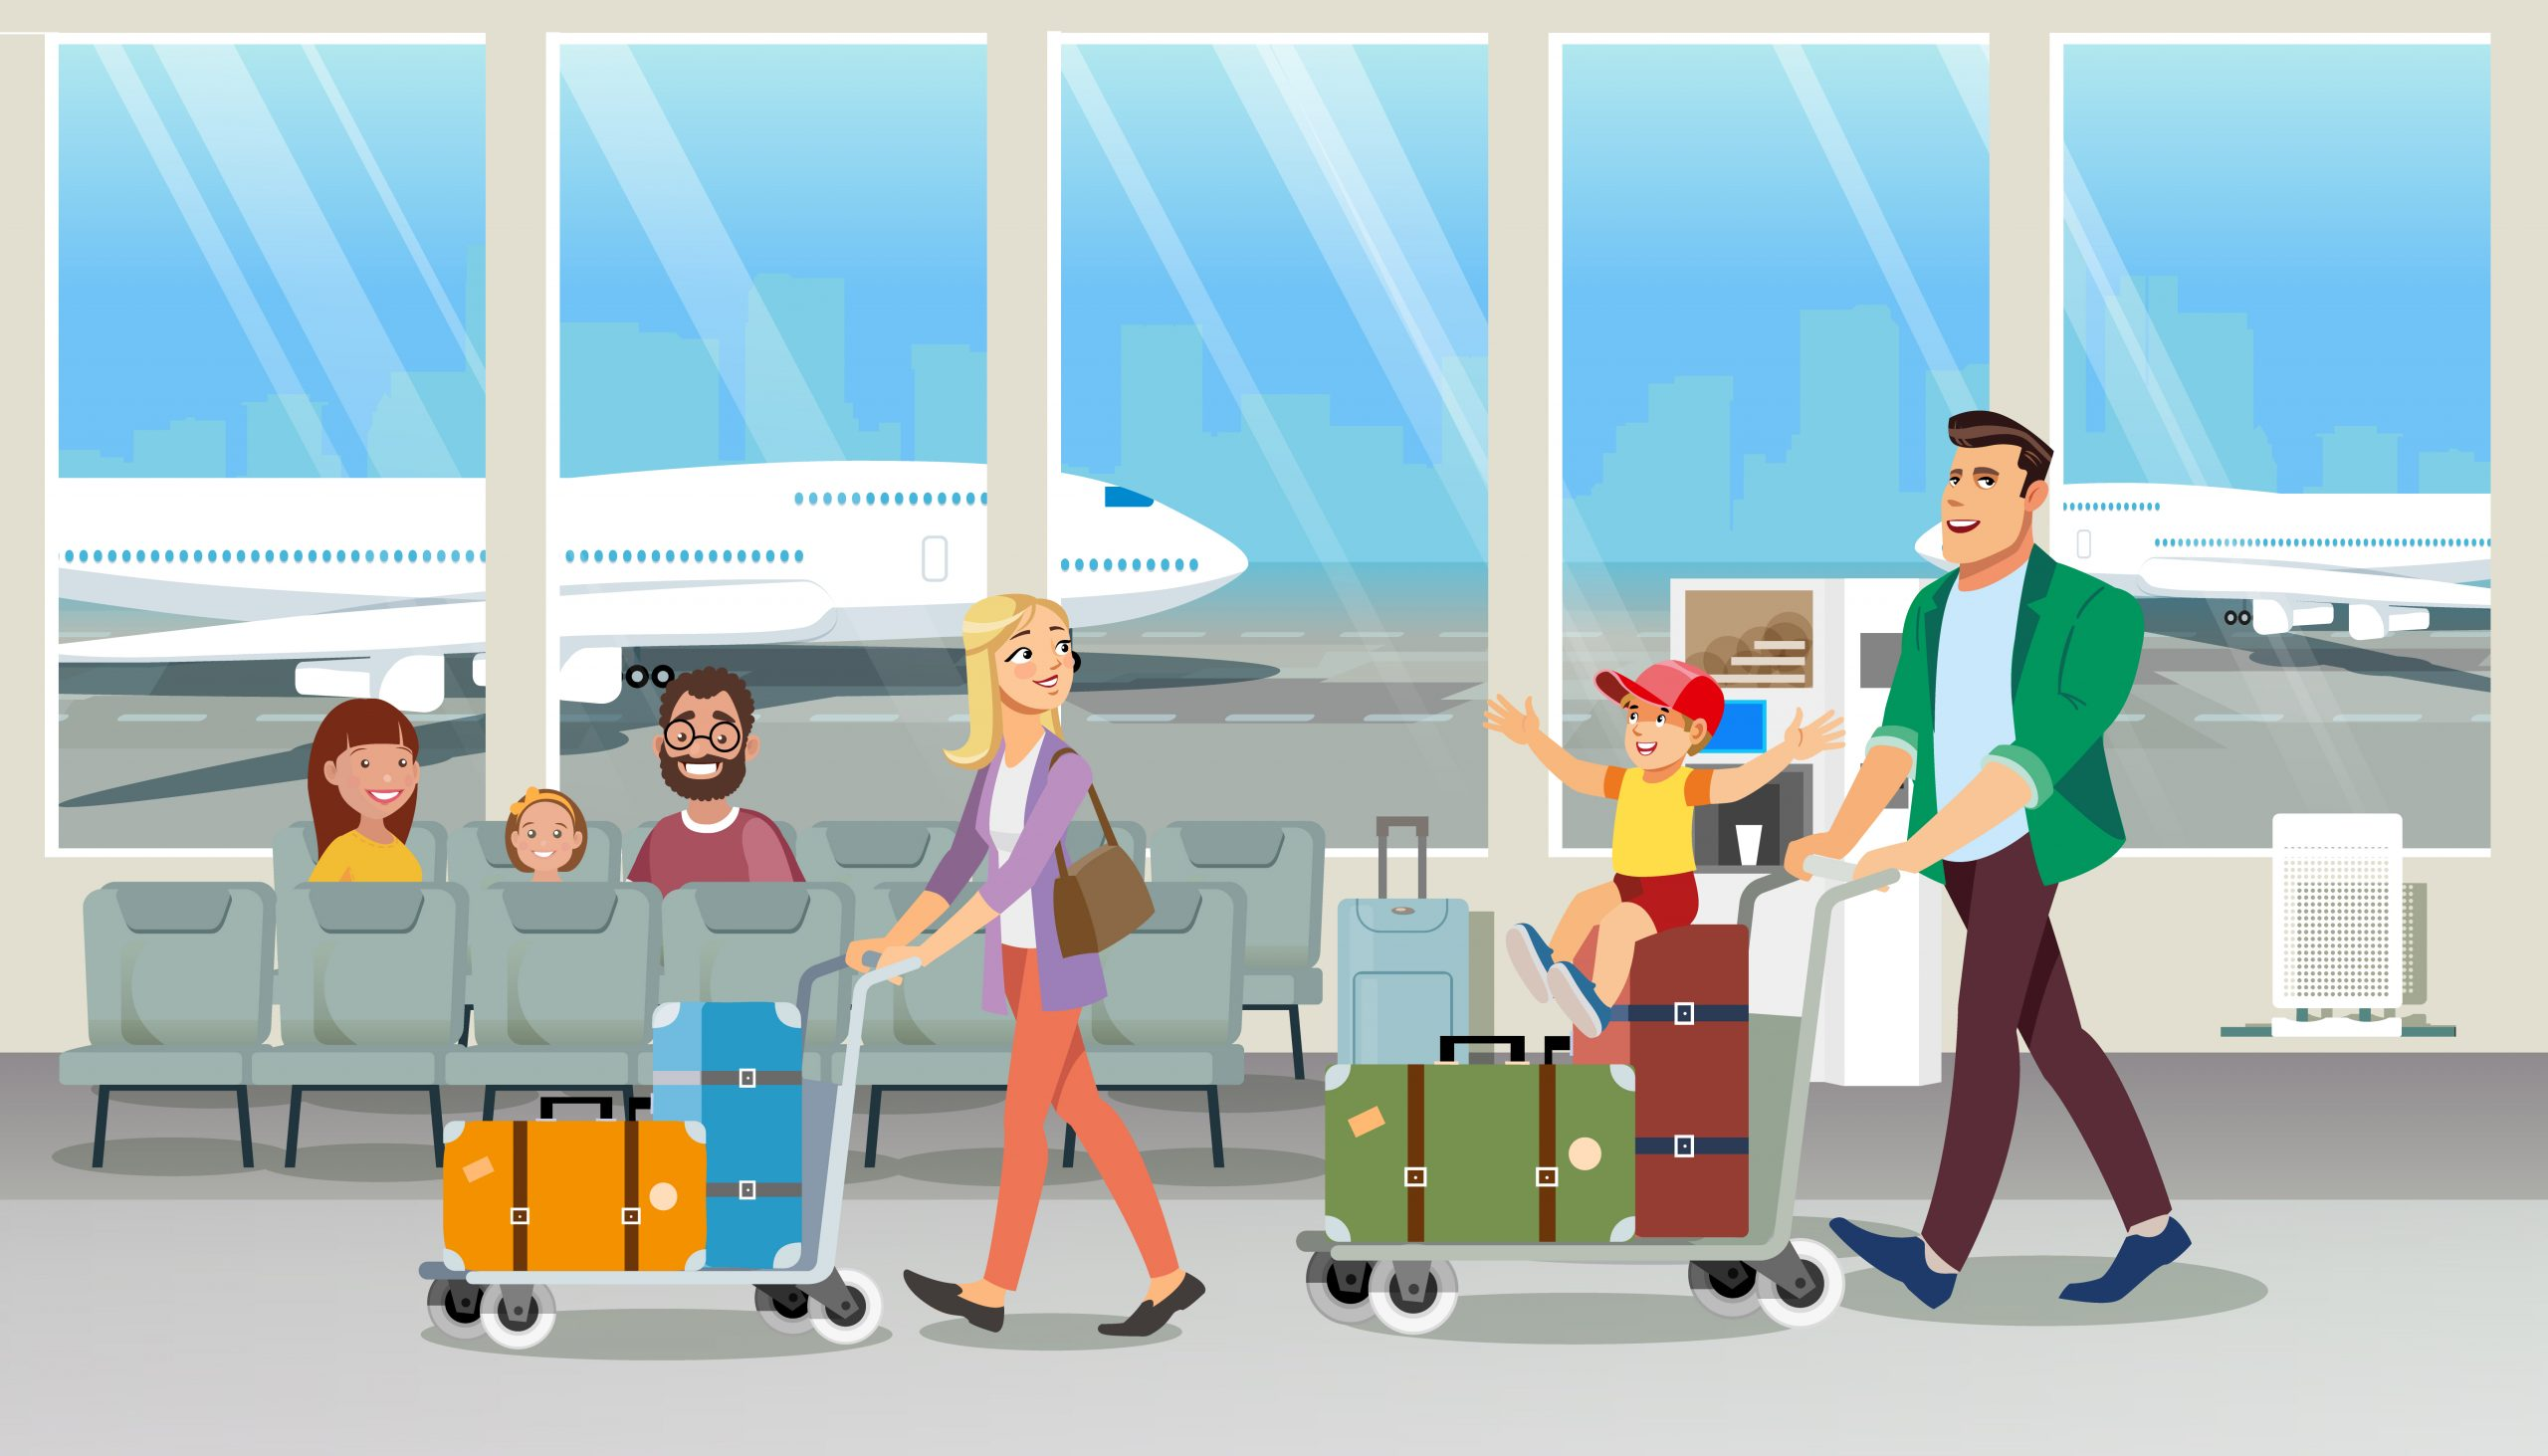 3 bags complimentary offers from Travelguzs